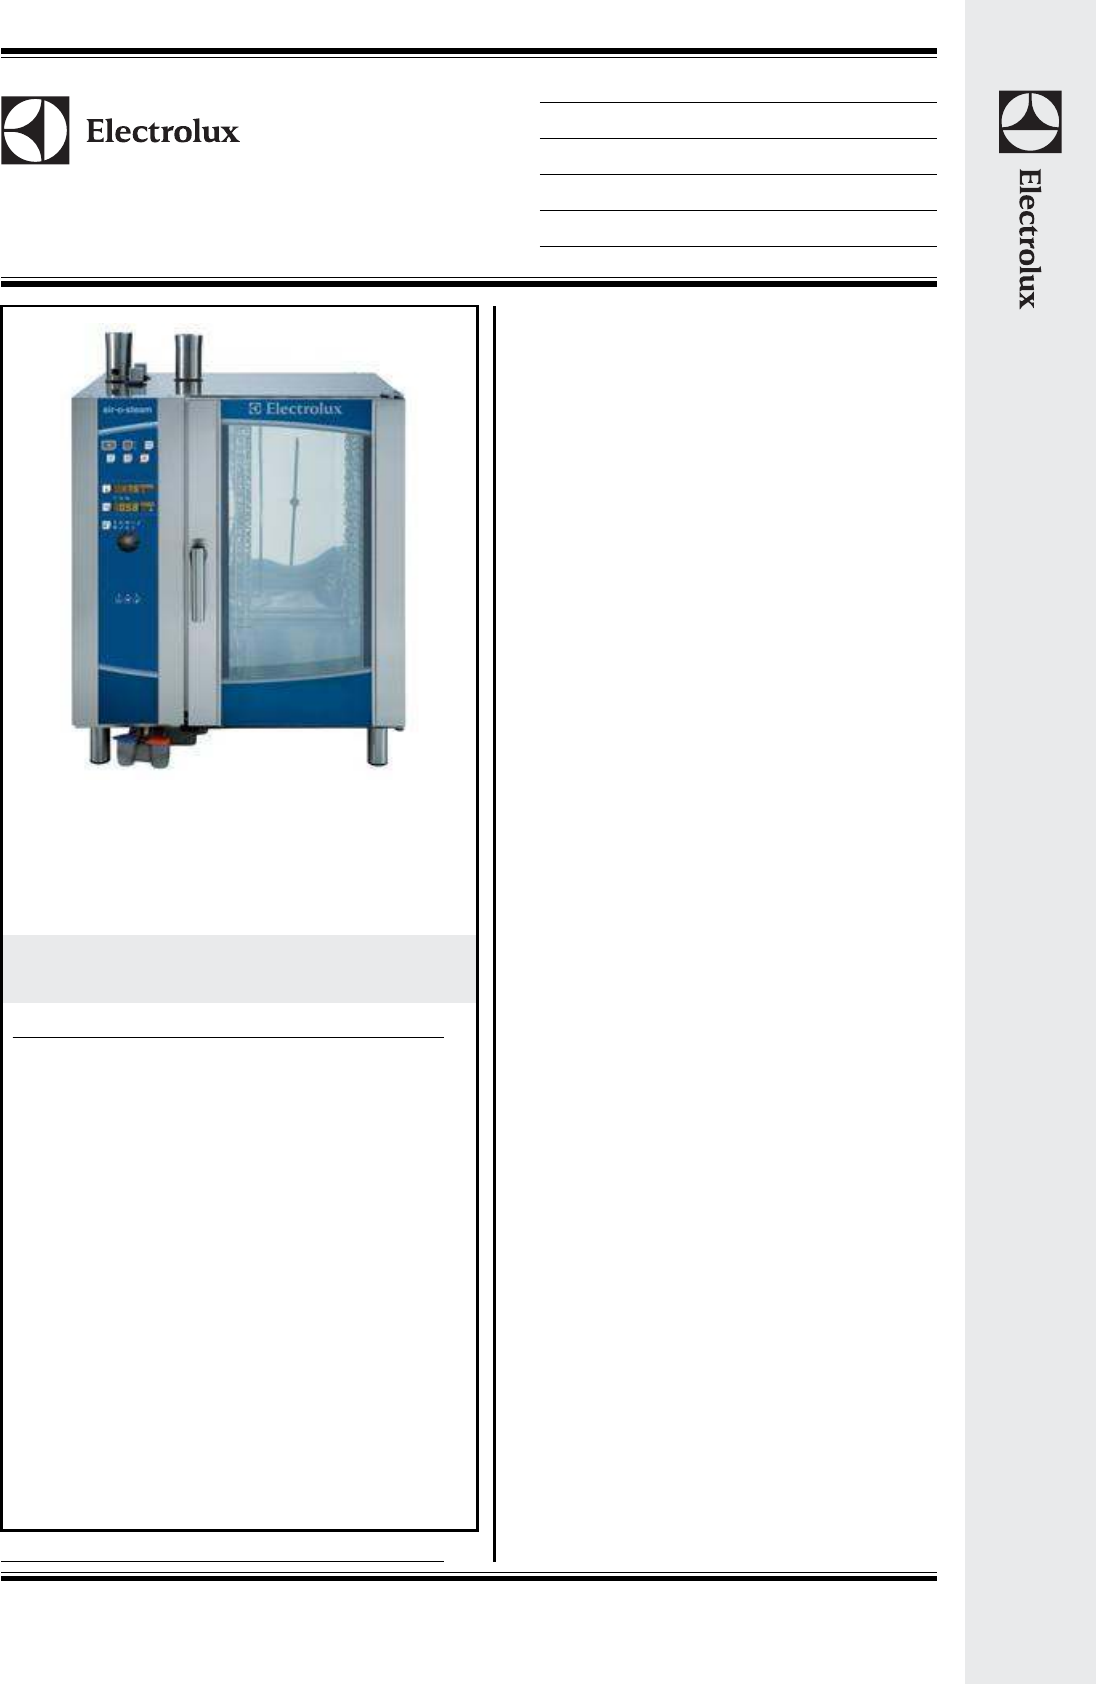 Electrolux Oven 101 User Guide